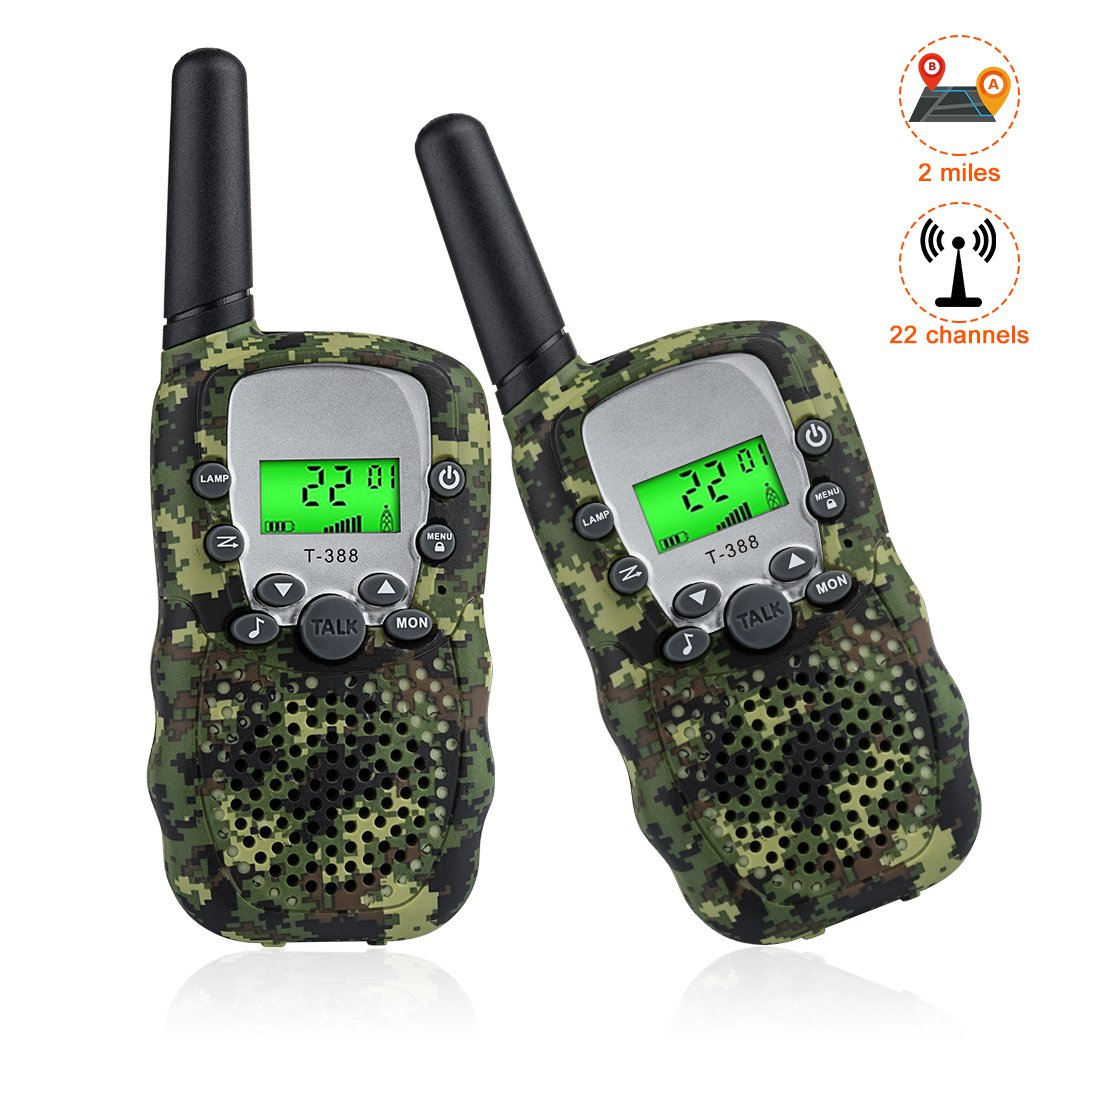 25 AURUZA Walkie Talkies for Kids Camo Two Way Radio with 3-Mile Long Range and 22 Channels Pre-Kindergarten Toy Interphone Rechargeable for Boys and Girls Outdoor and Indoor Games Manufacturer